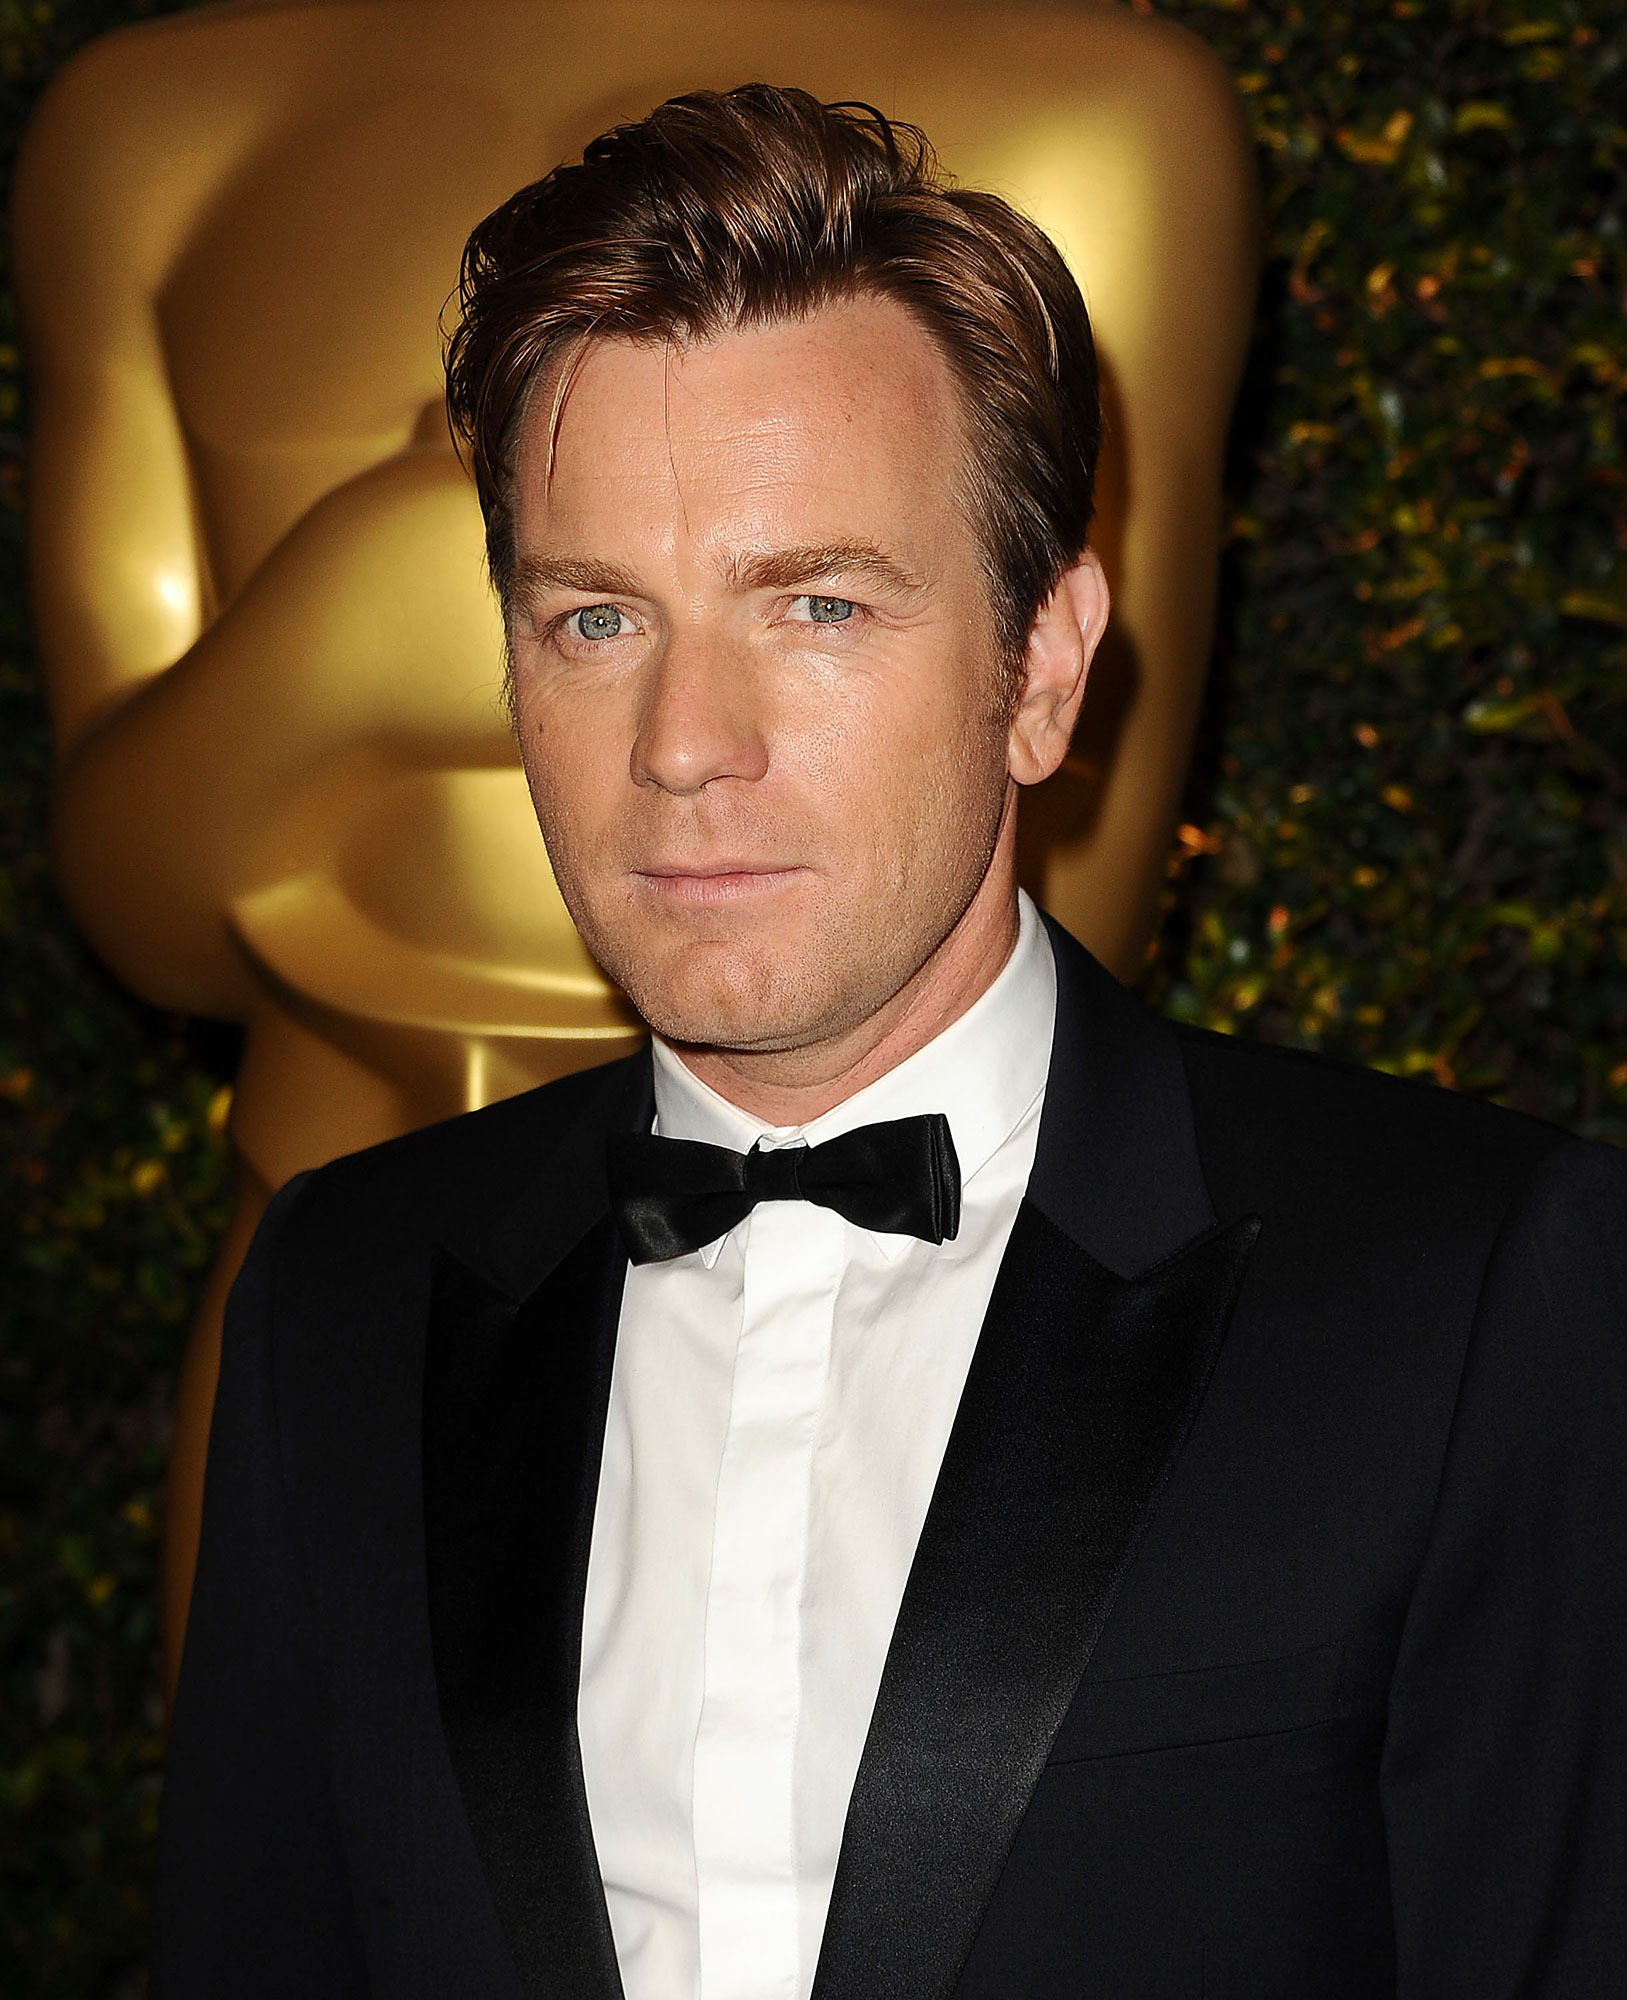 Ewan McGregor - Stars Who Have Never Won Oscars - For all his singing, dancing and acting skills, the U.K.-born actor has yet to receive the ultimate recognition for his work in film.